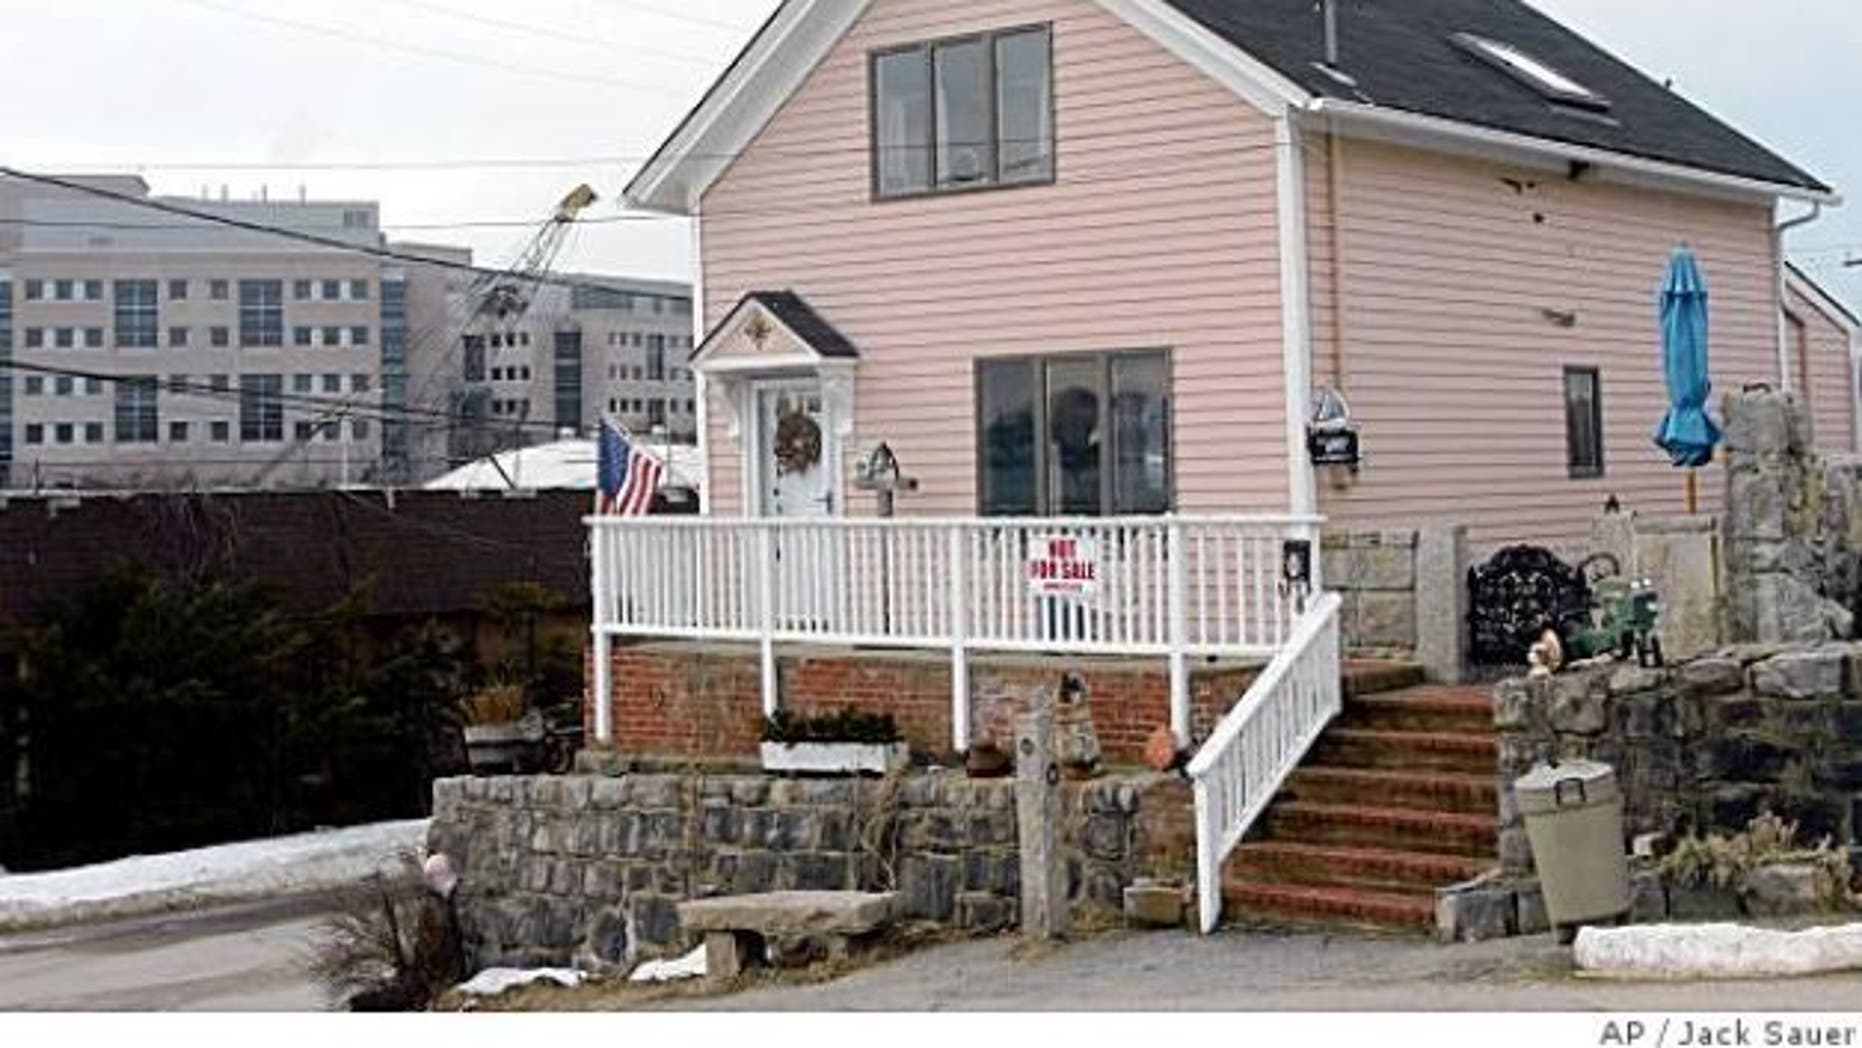 Feb. 8, 2005: The home of Susette Kelo in the Fort Trumbull section of New London, Conn. The small house once at the center of a U.S. Supreme Court decision on government seizure of private property was later disassembled and relocated to a site close to downtown New London. Avner Gregory, of New London, the new owner, dedicated his house on June 21, 2008, before a crowd of about 200 participants and onlookers. (AP/Jack Sauer)